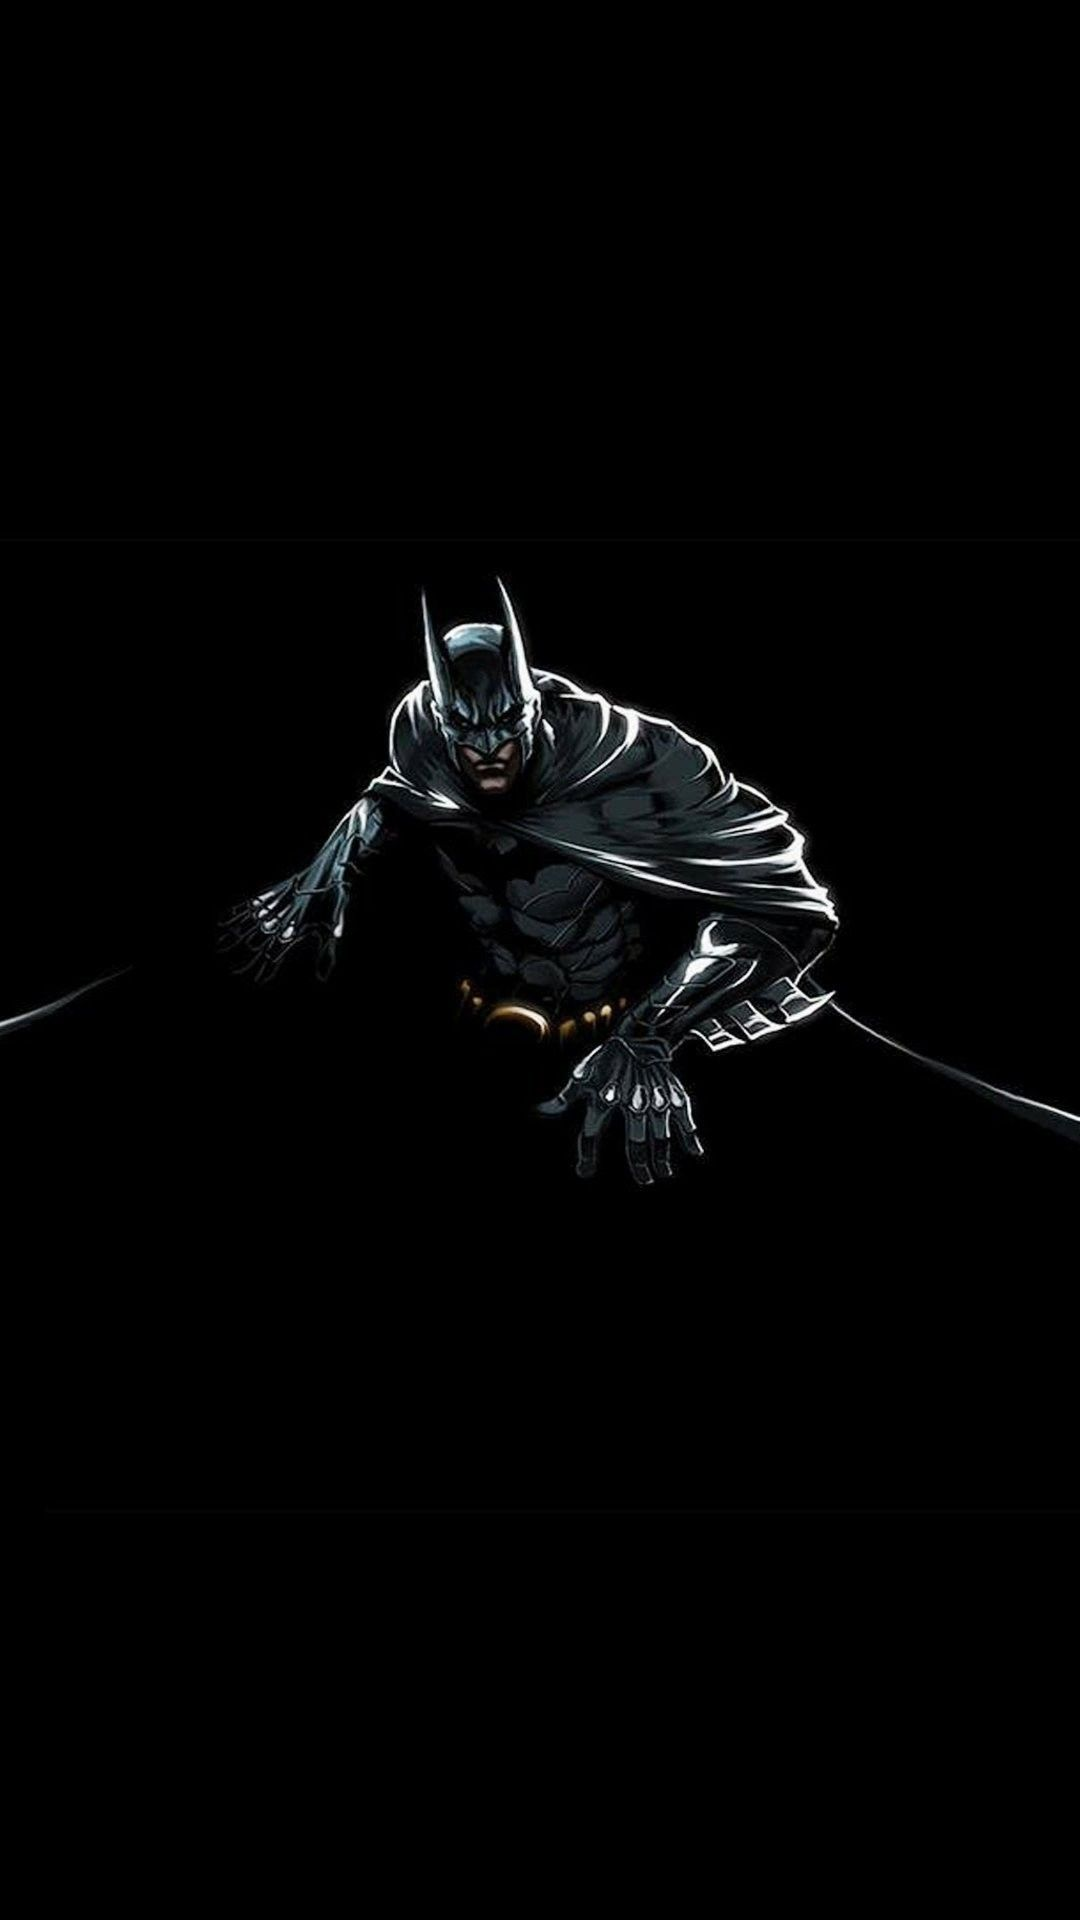 Batman wallpaper image by Anthony Walker on The Bat